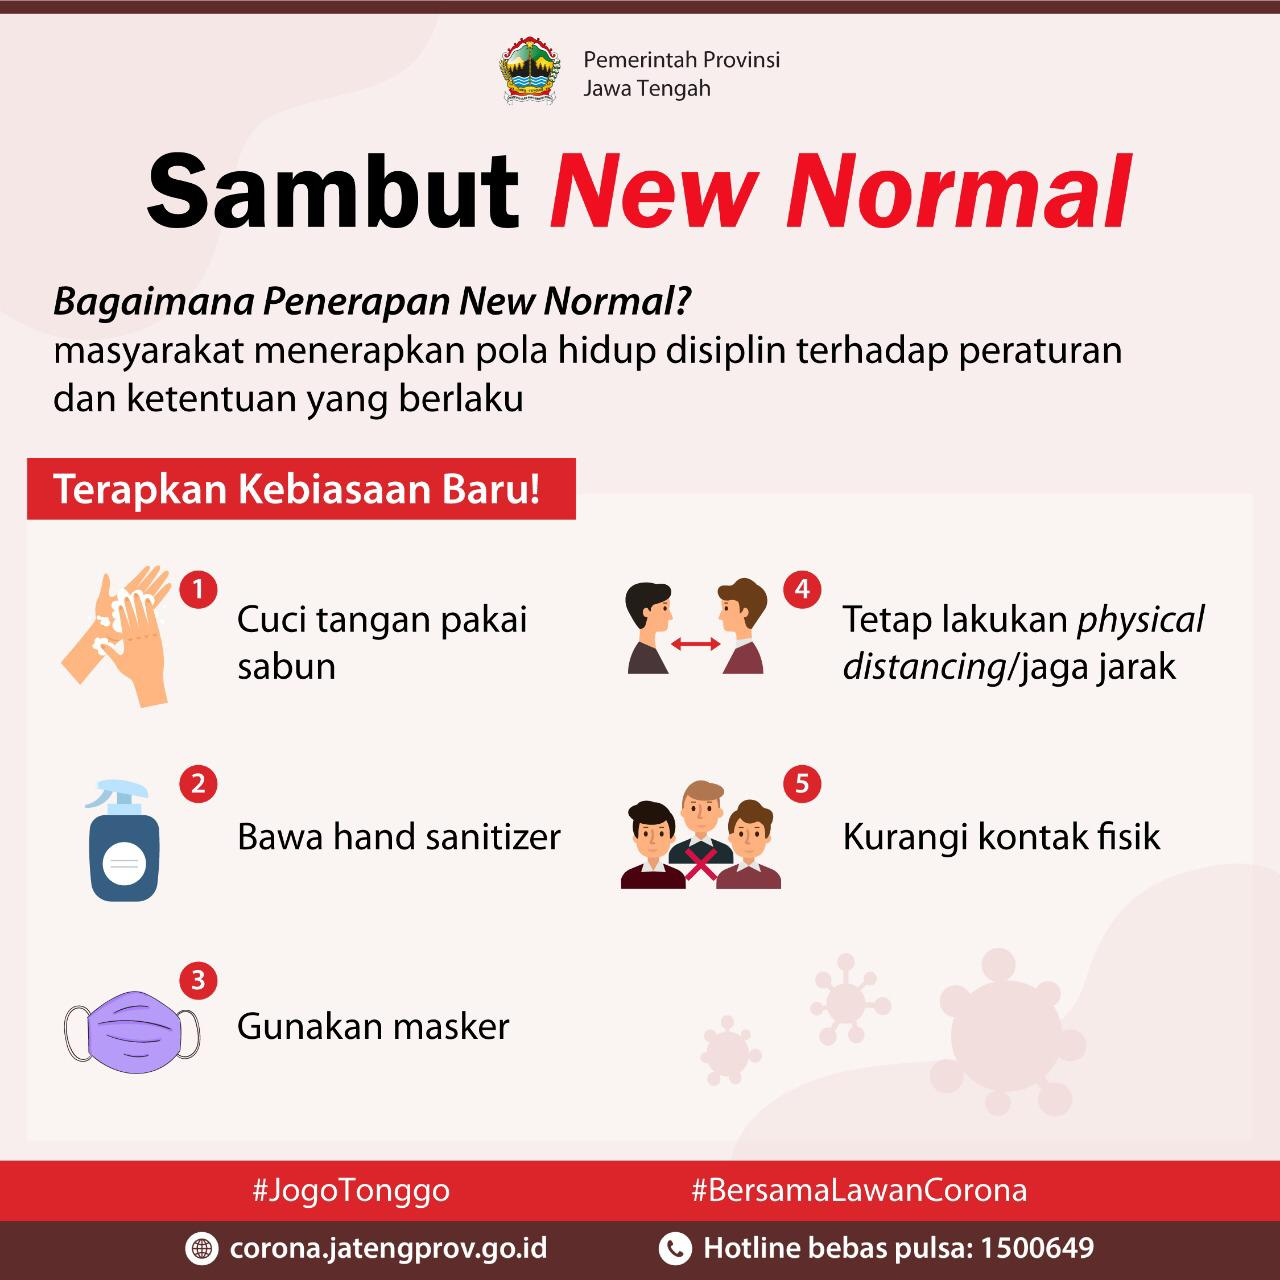 Sambut New Normal